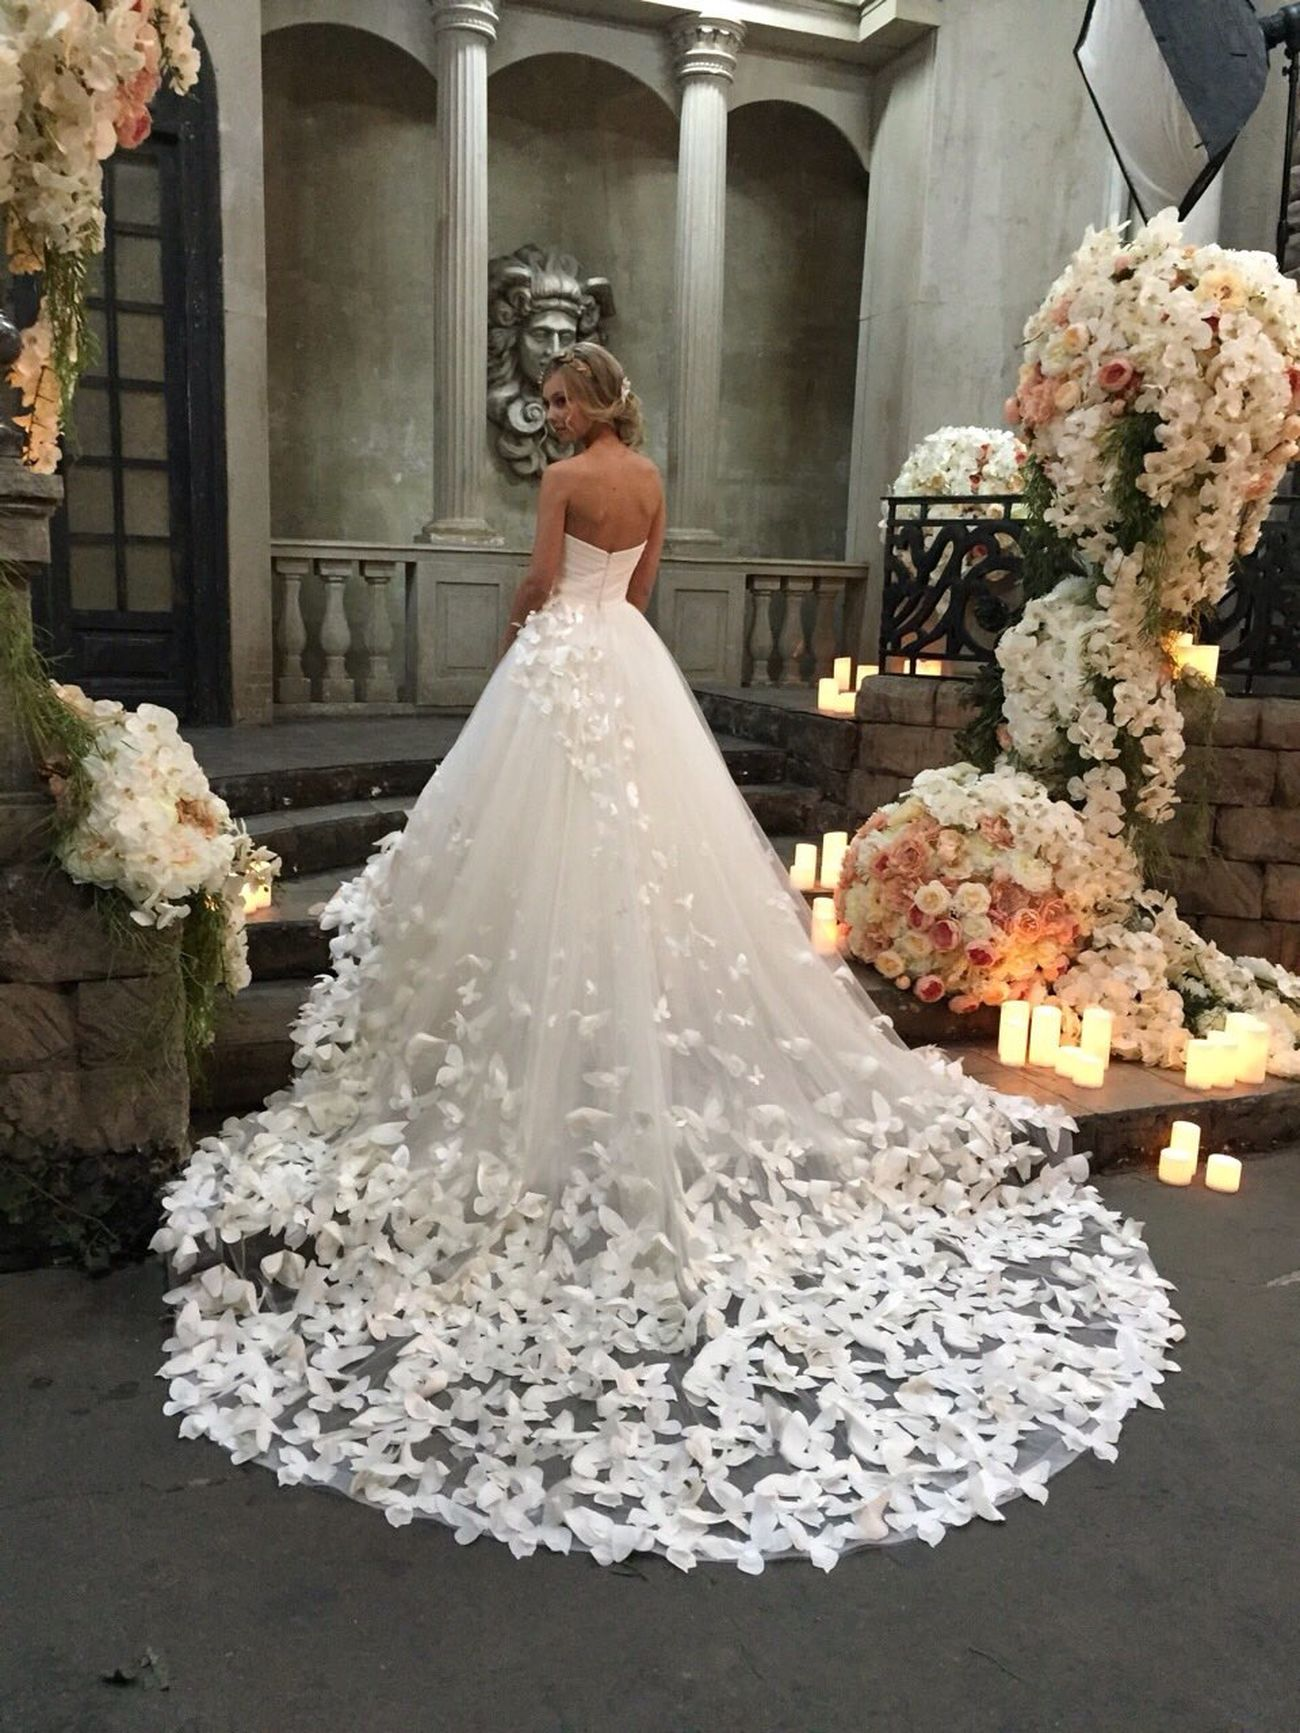 Novia2015 Happy Wedding Weddingdetails Wedding2015 Weddinghair Wedding Photos Wedding Photography Wedding Hairstylist Blondehair